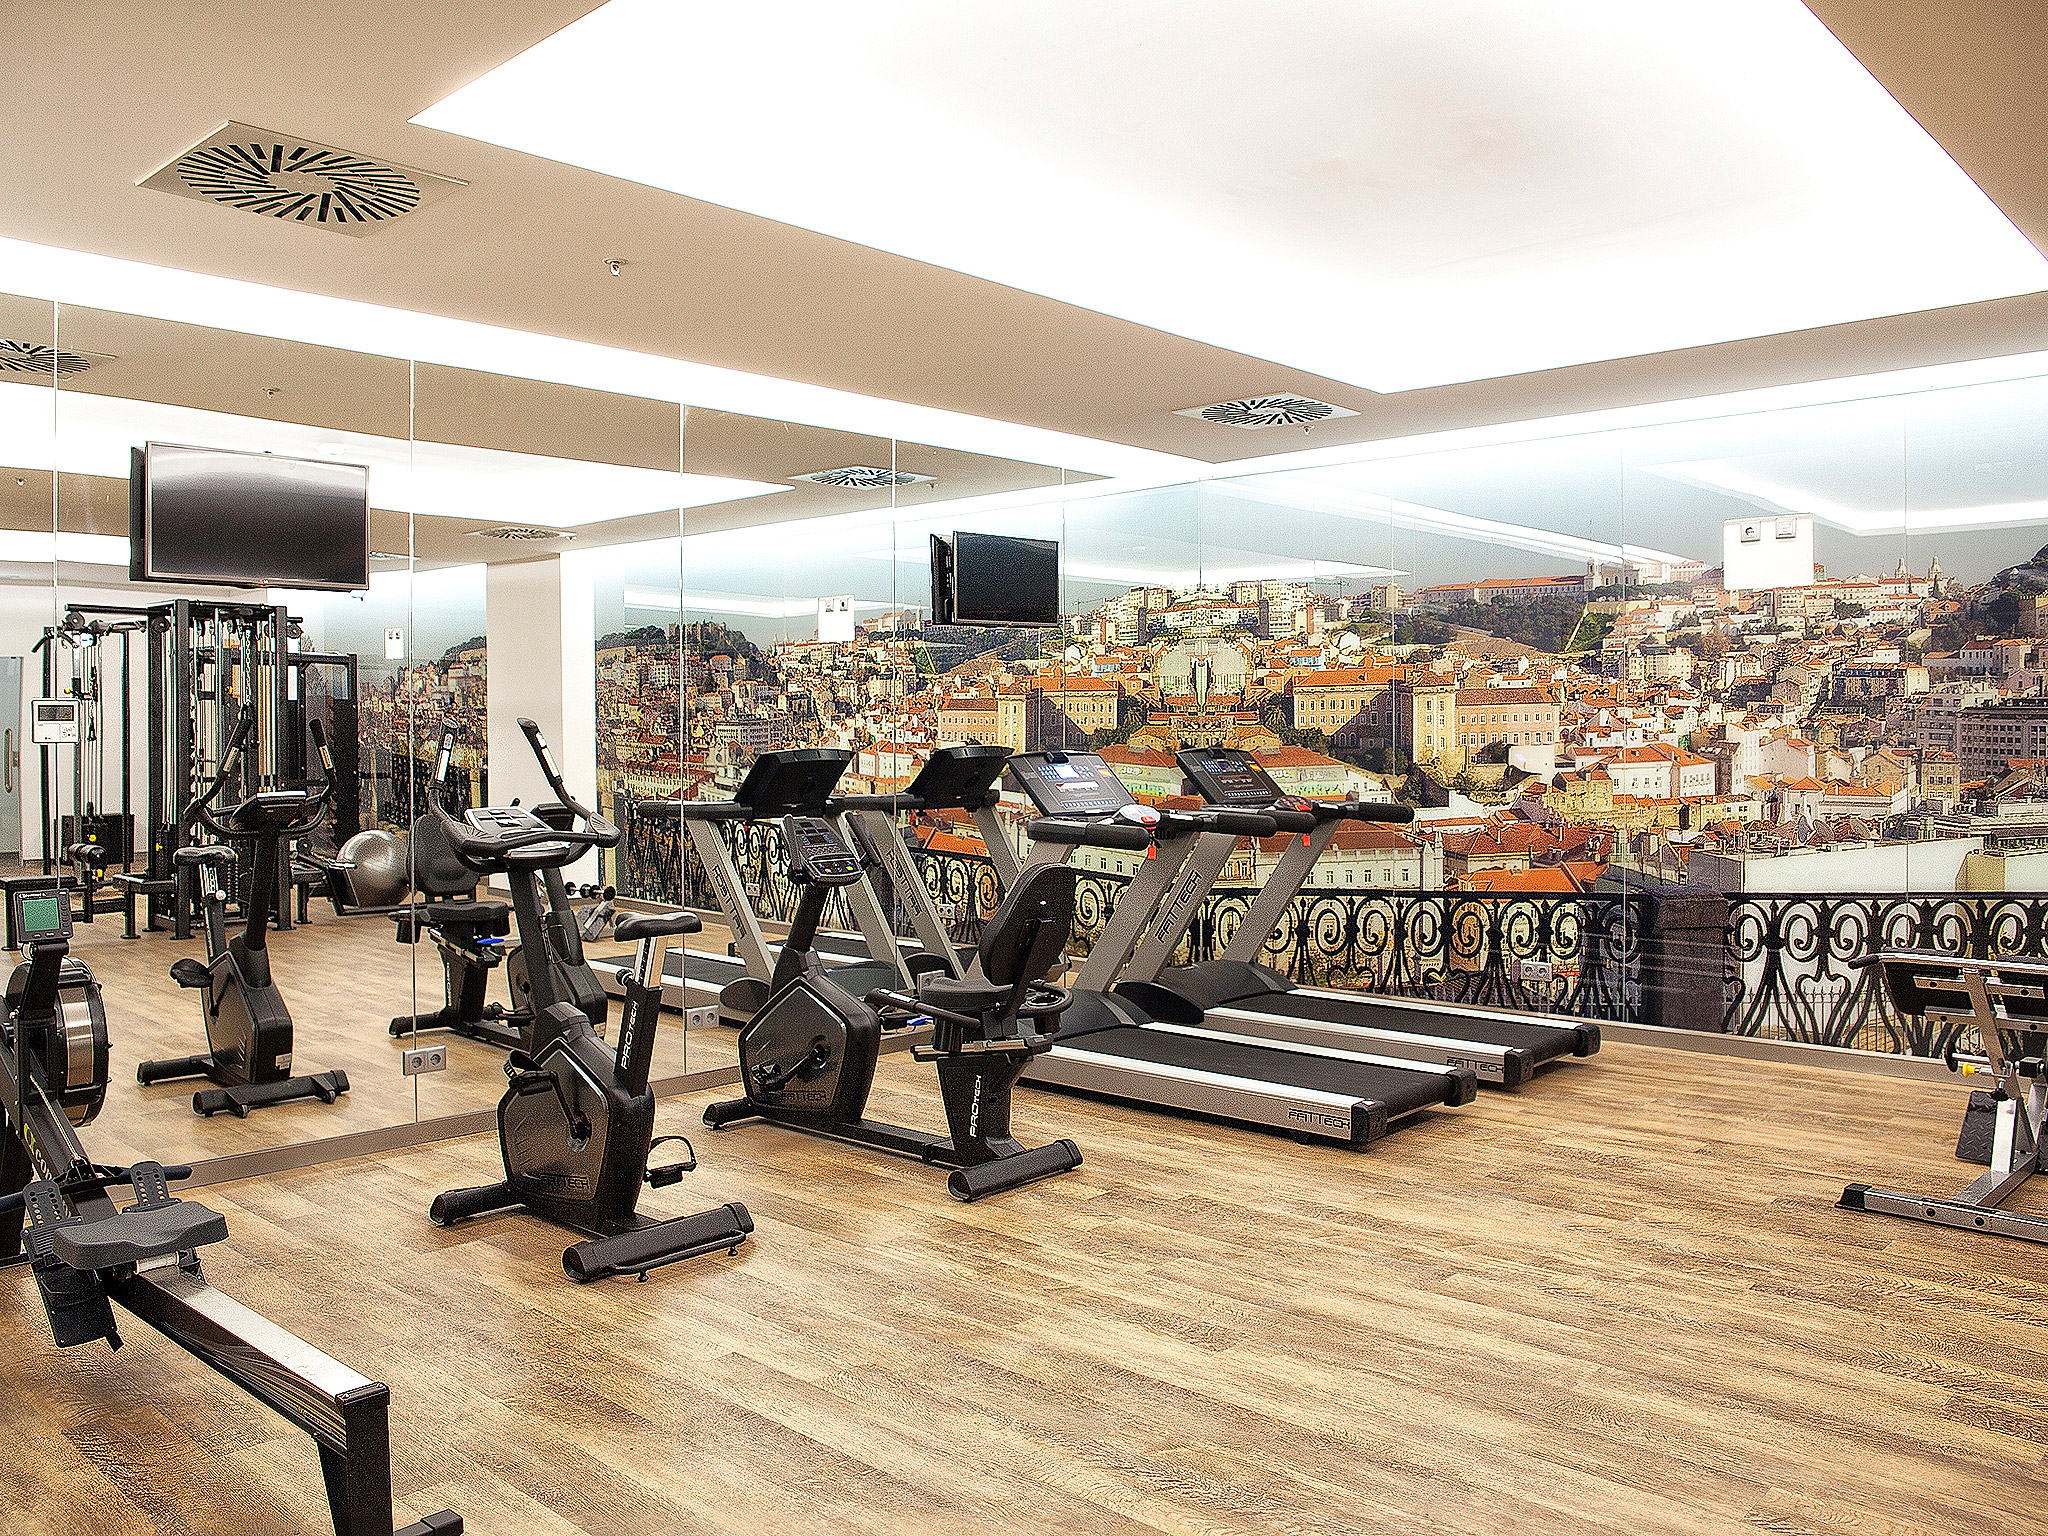 419/Photos-Lisboa/Spa/Fitness-Center.jpg